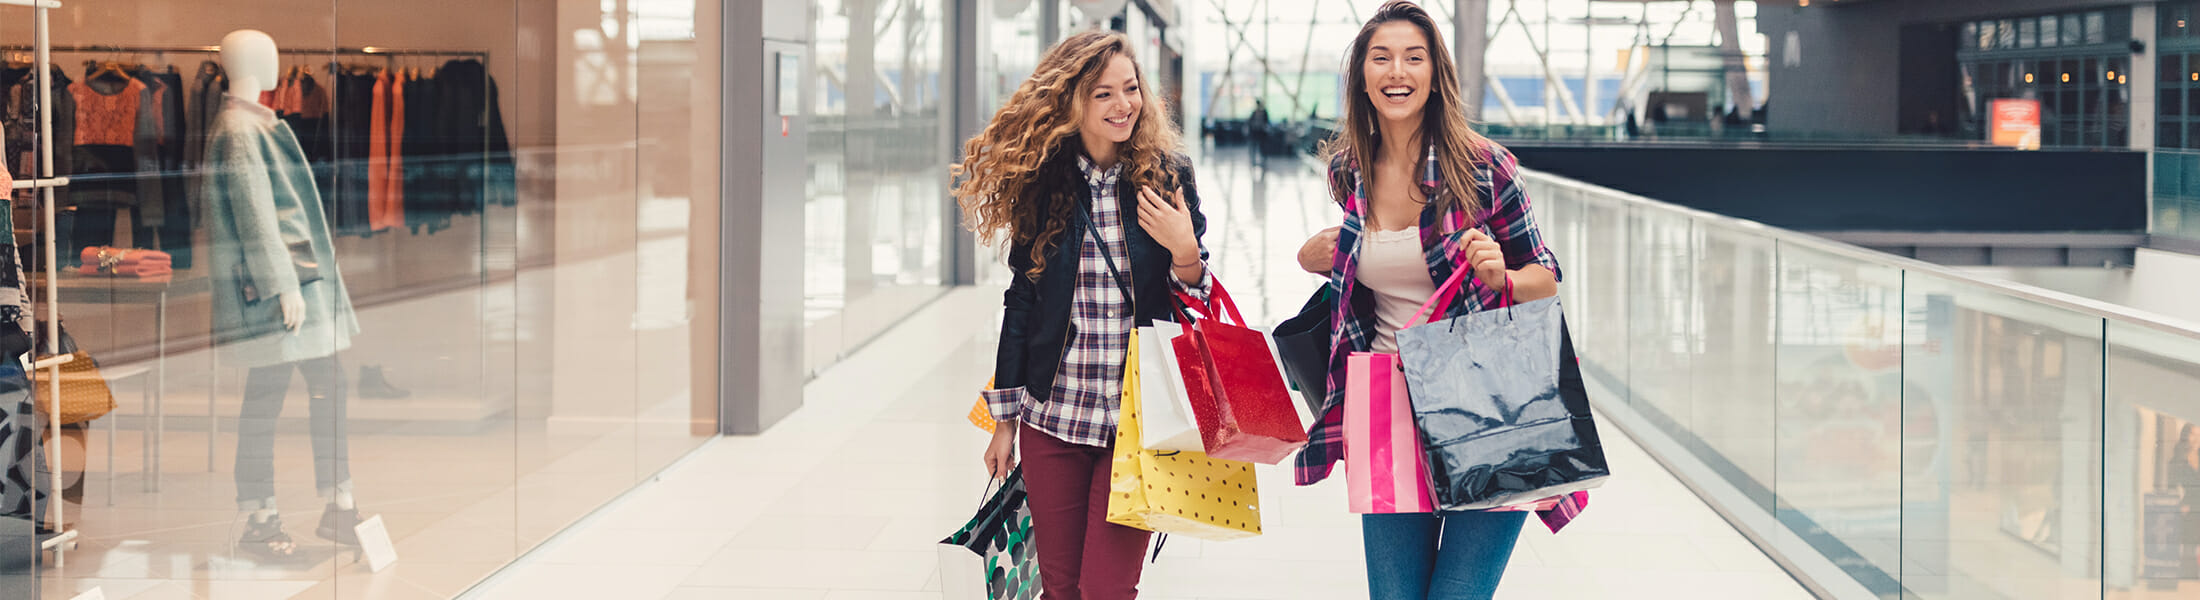 Women enjoying a day out shopping at LynnMall